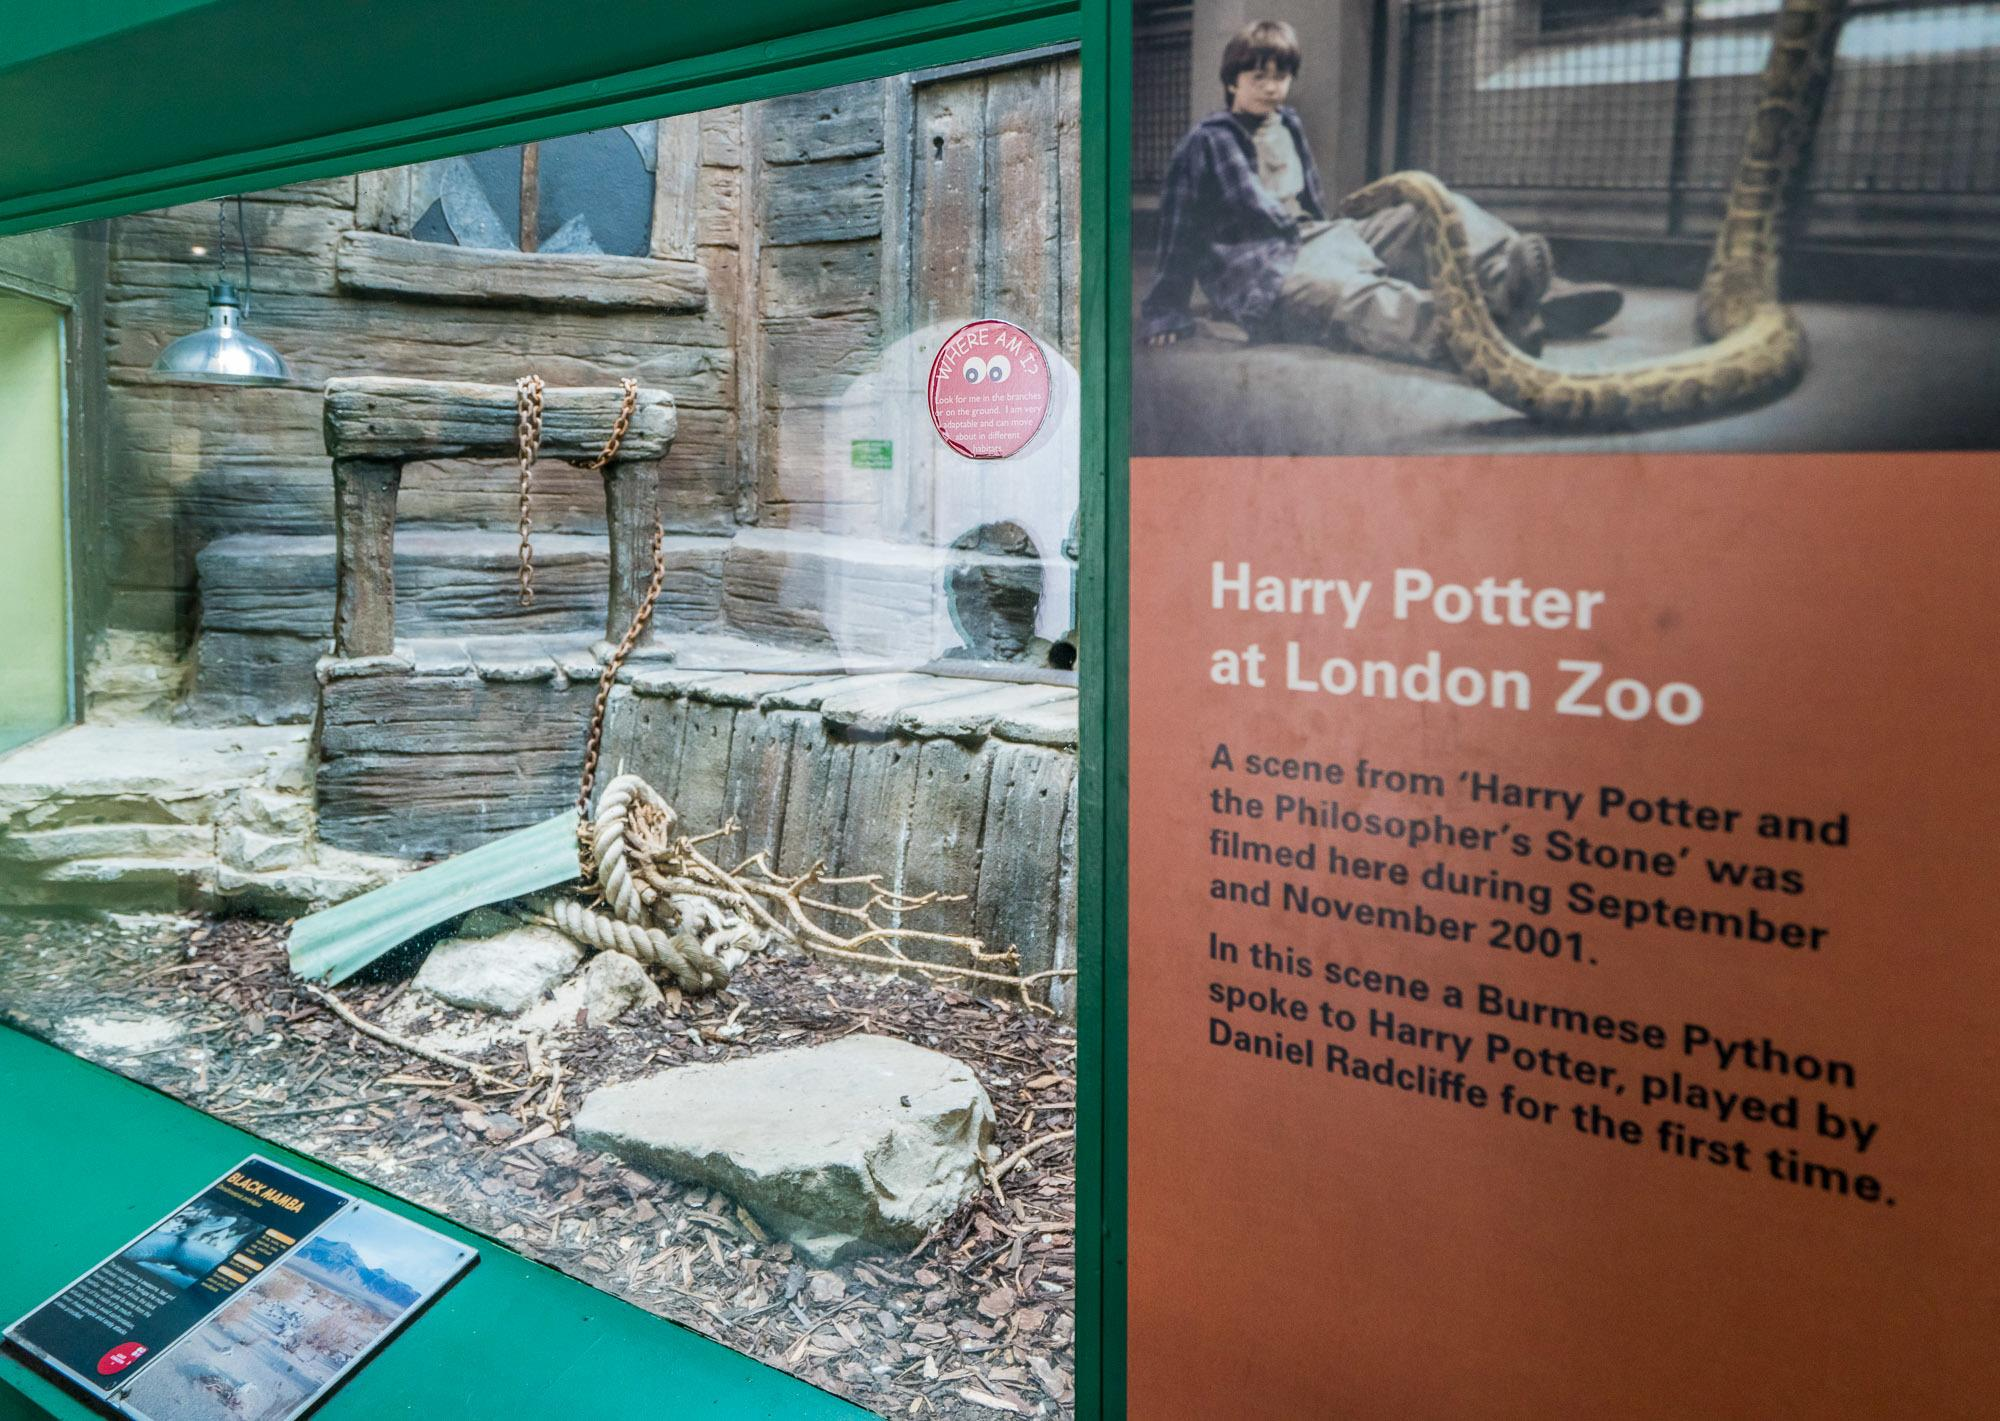 The Reptile House at London Zoo is where a scene from the first Harry Potter movie was filmed.